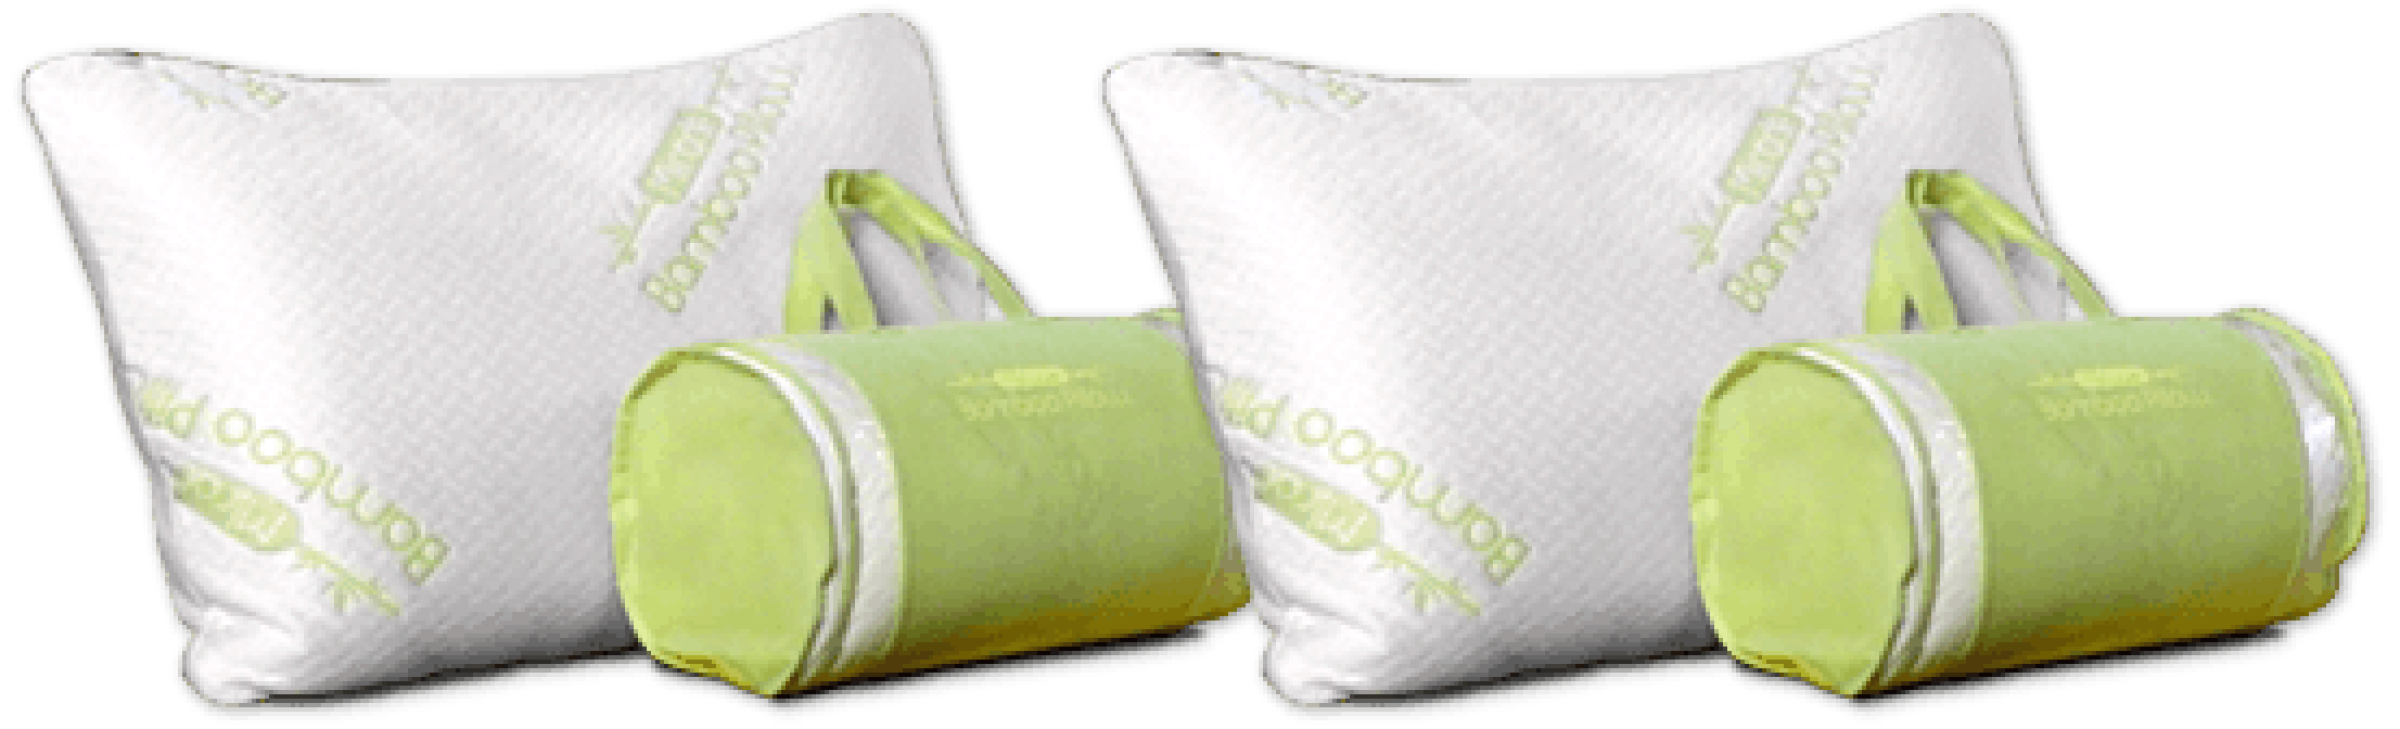 what are bamboo pillows made of